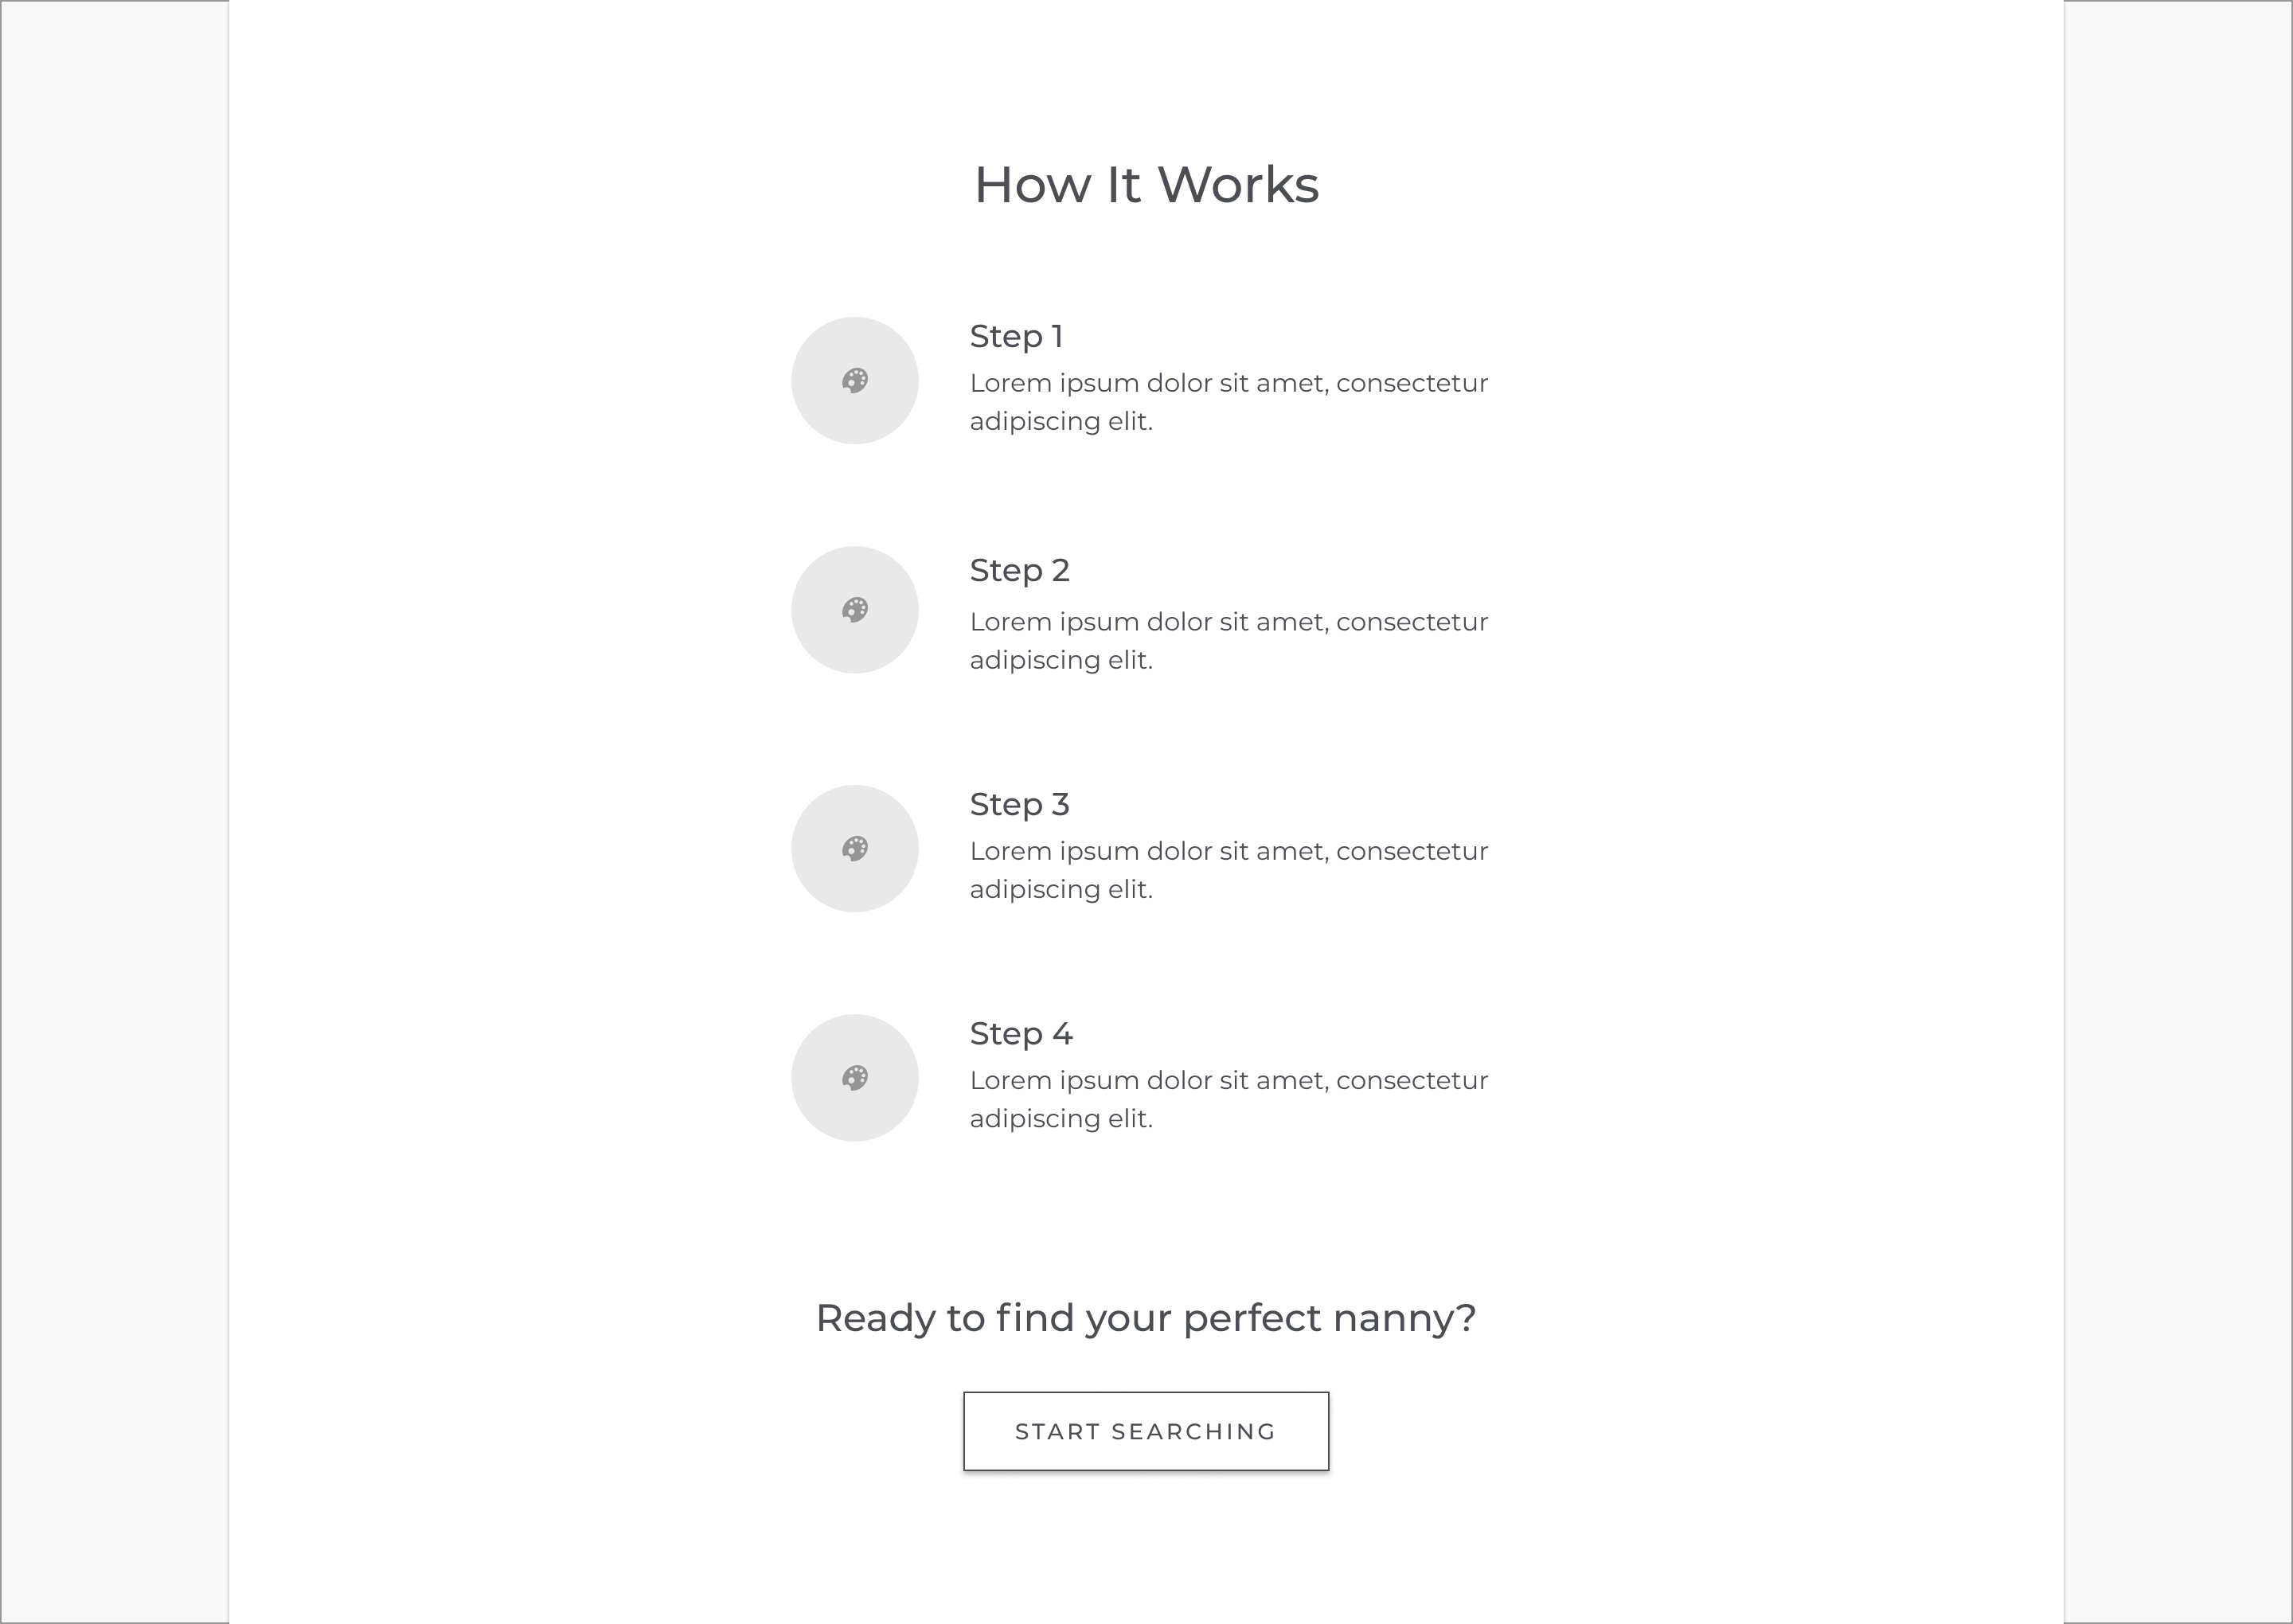 Previous iteration wireframe of the how it works section